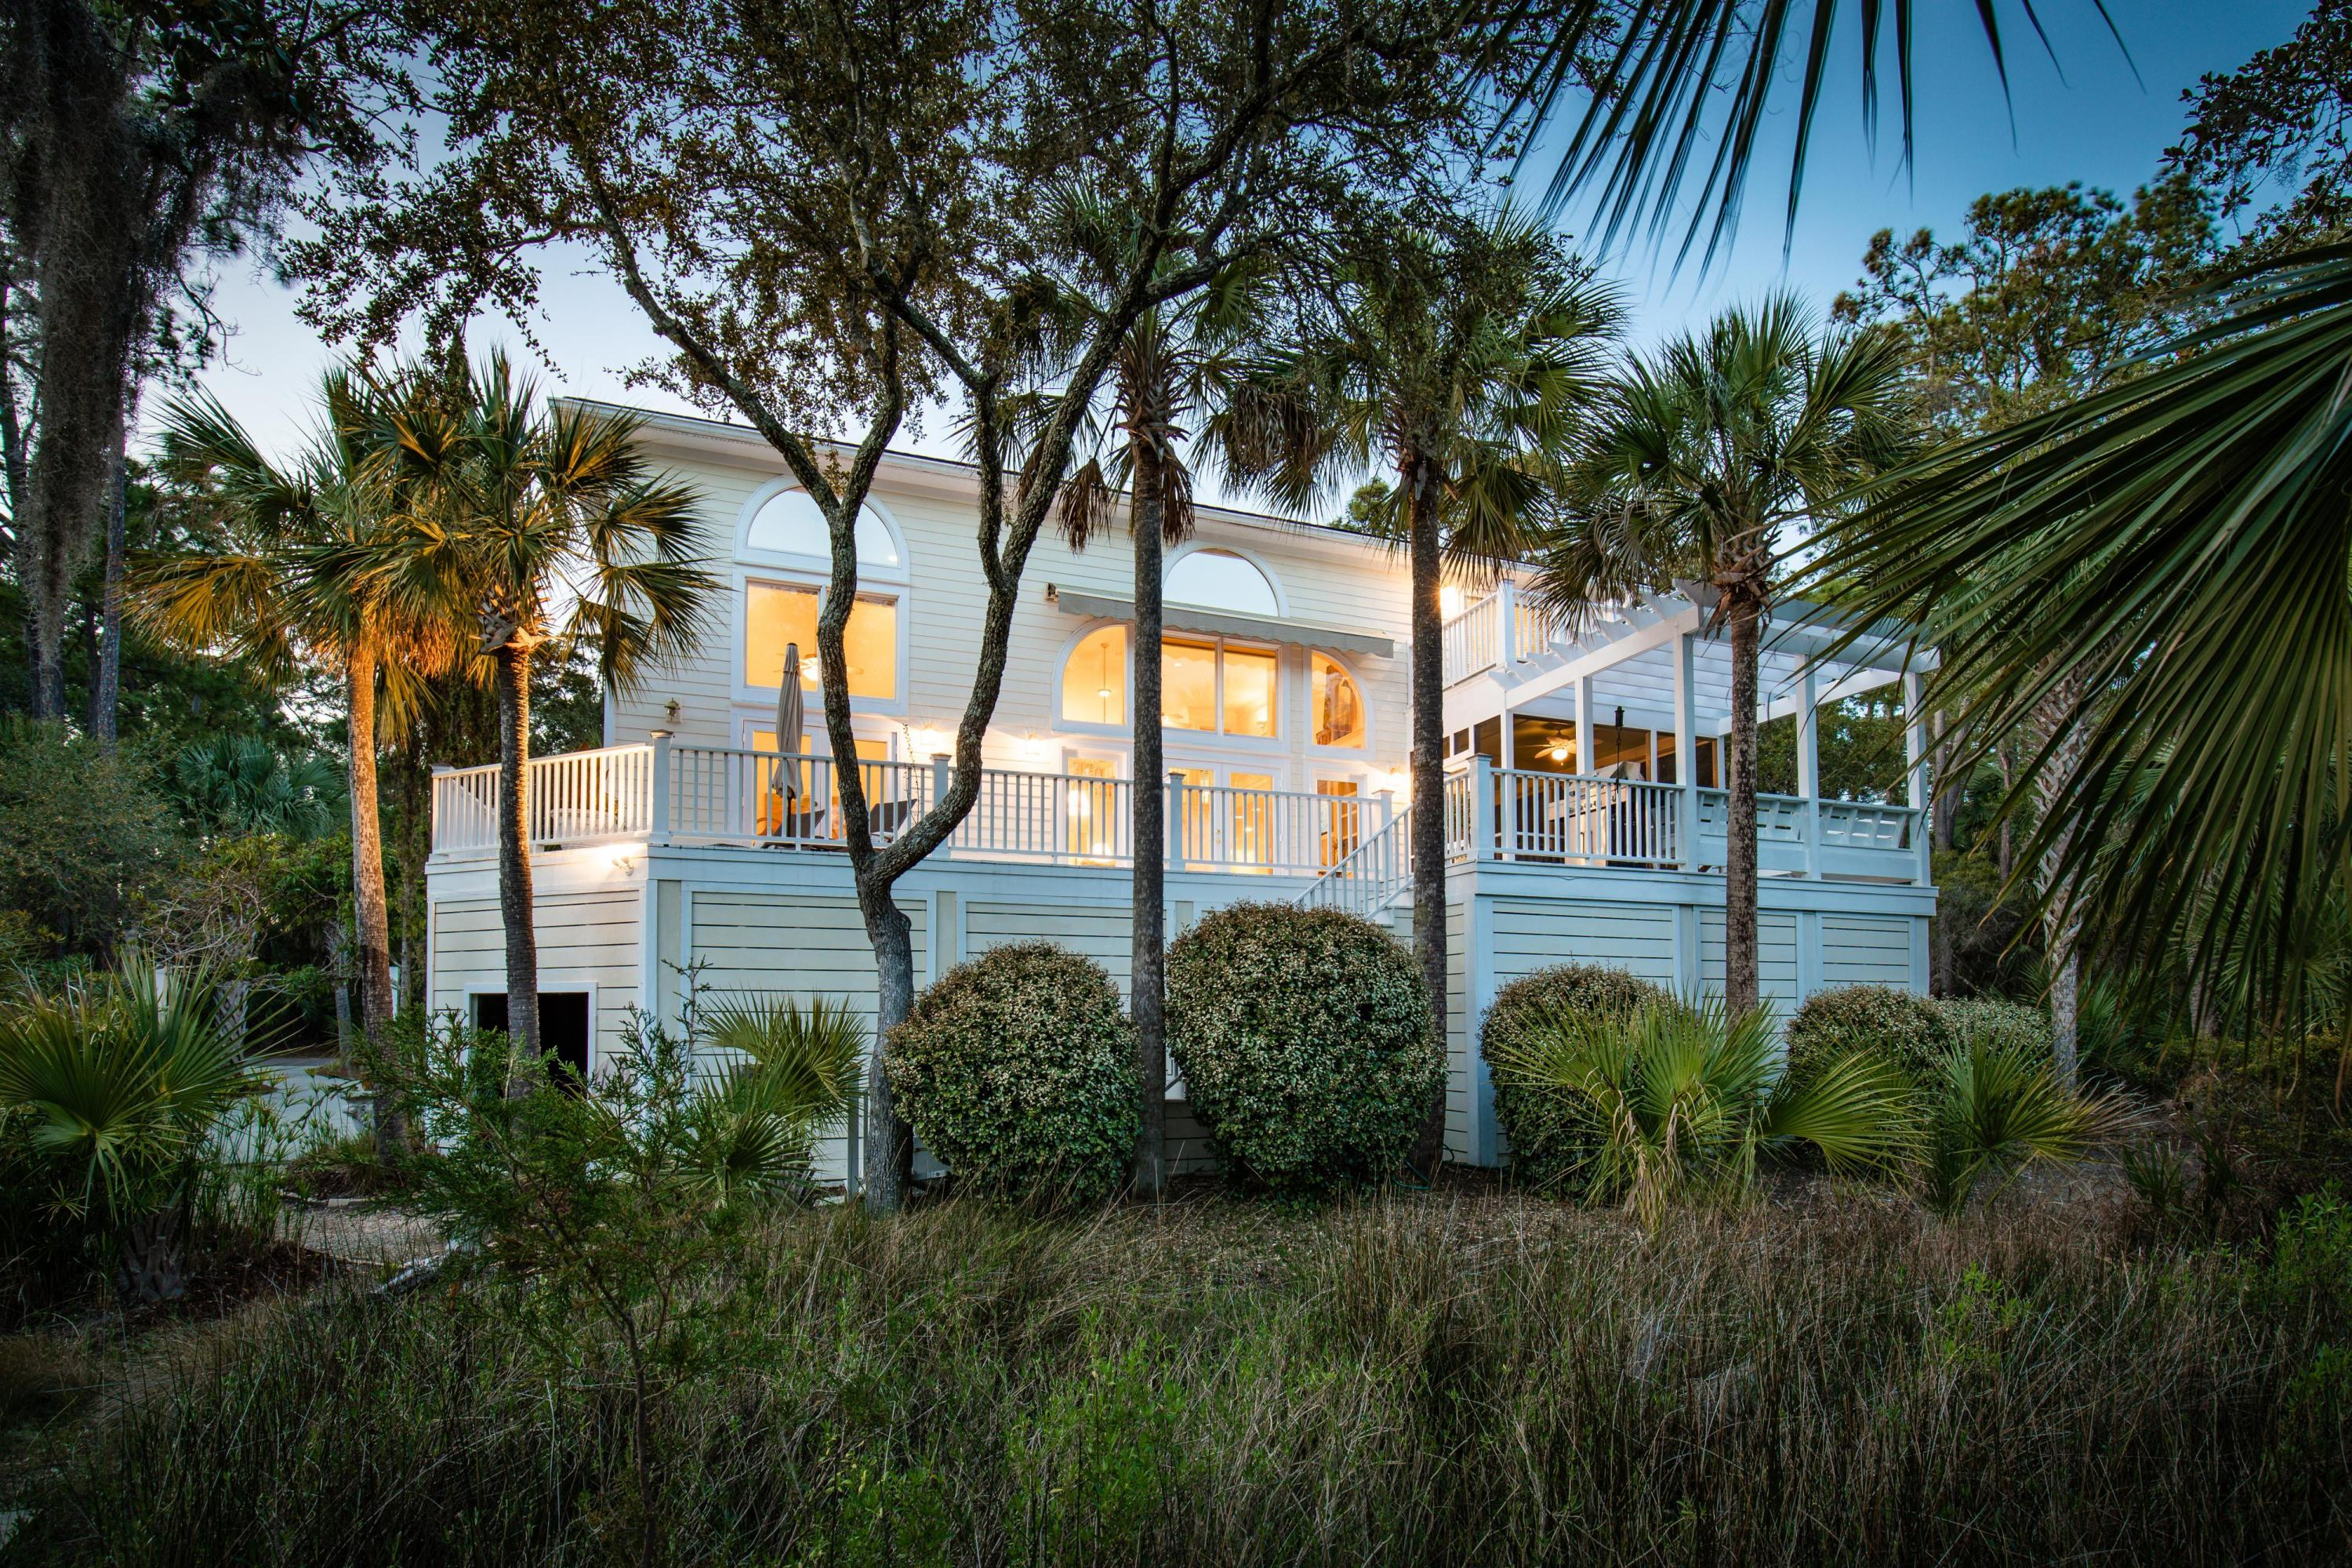 Seabrook Island Homes For Sale - 2957 Deer Point, Seabrook Island, SC - 52